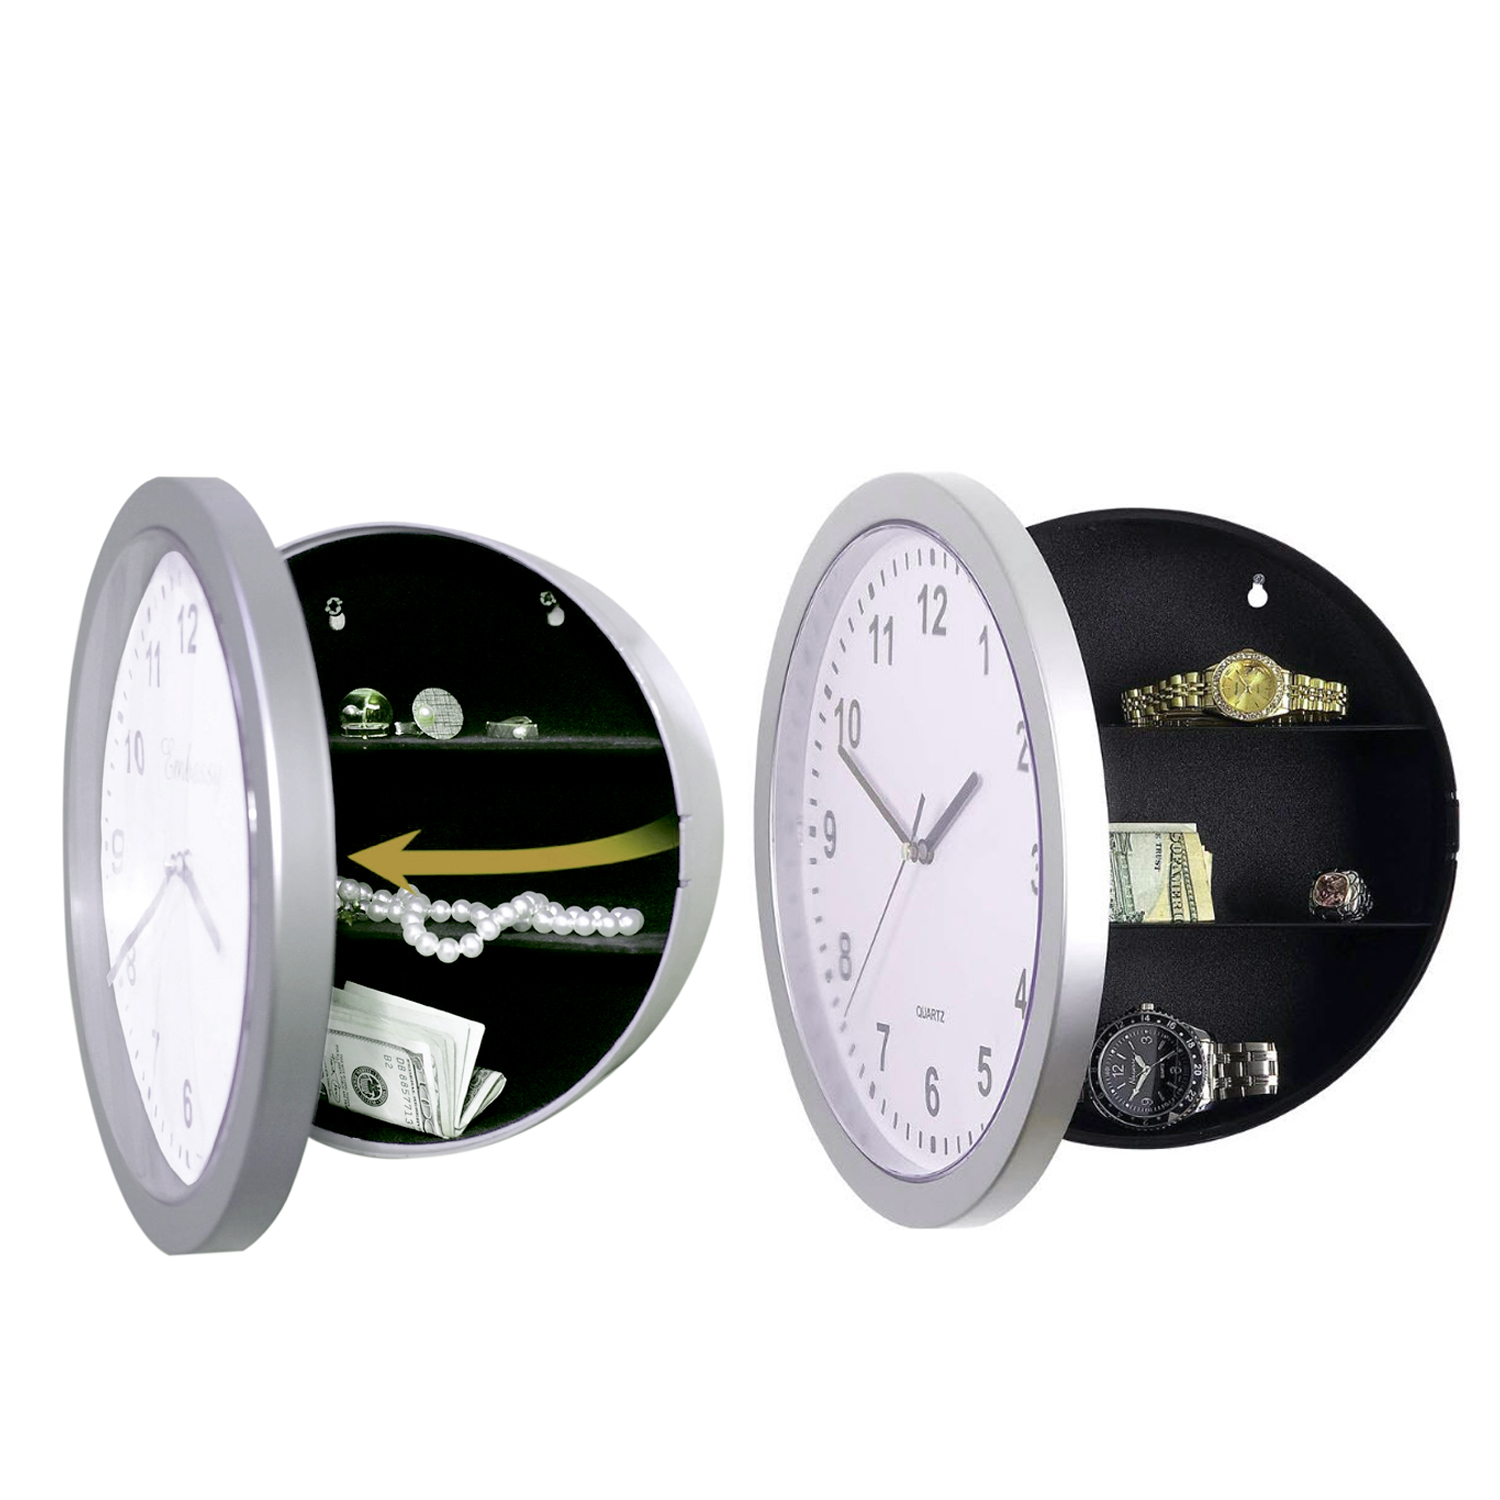 Novelty Wall Clock Diversion Safe Secret Stash Money Cash Jewelry Toy Storage Security Lock Box Tin